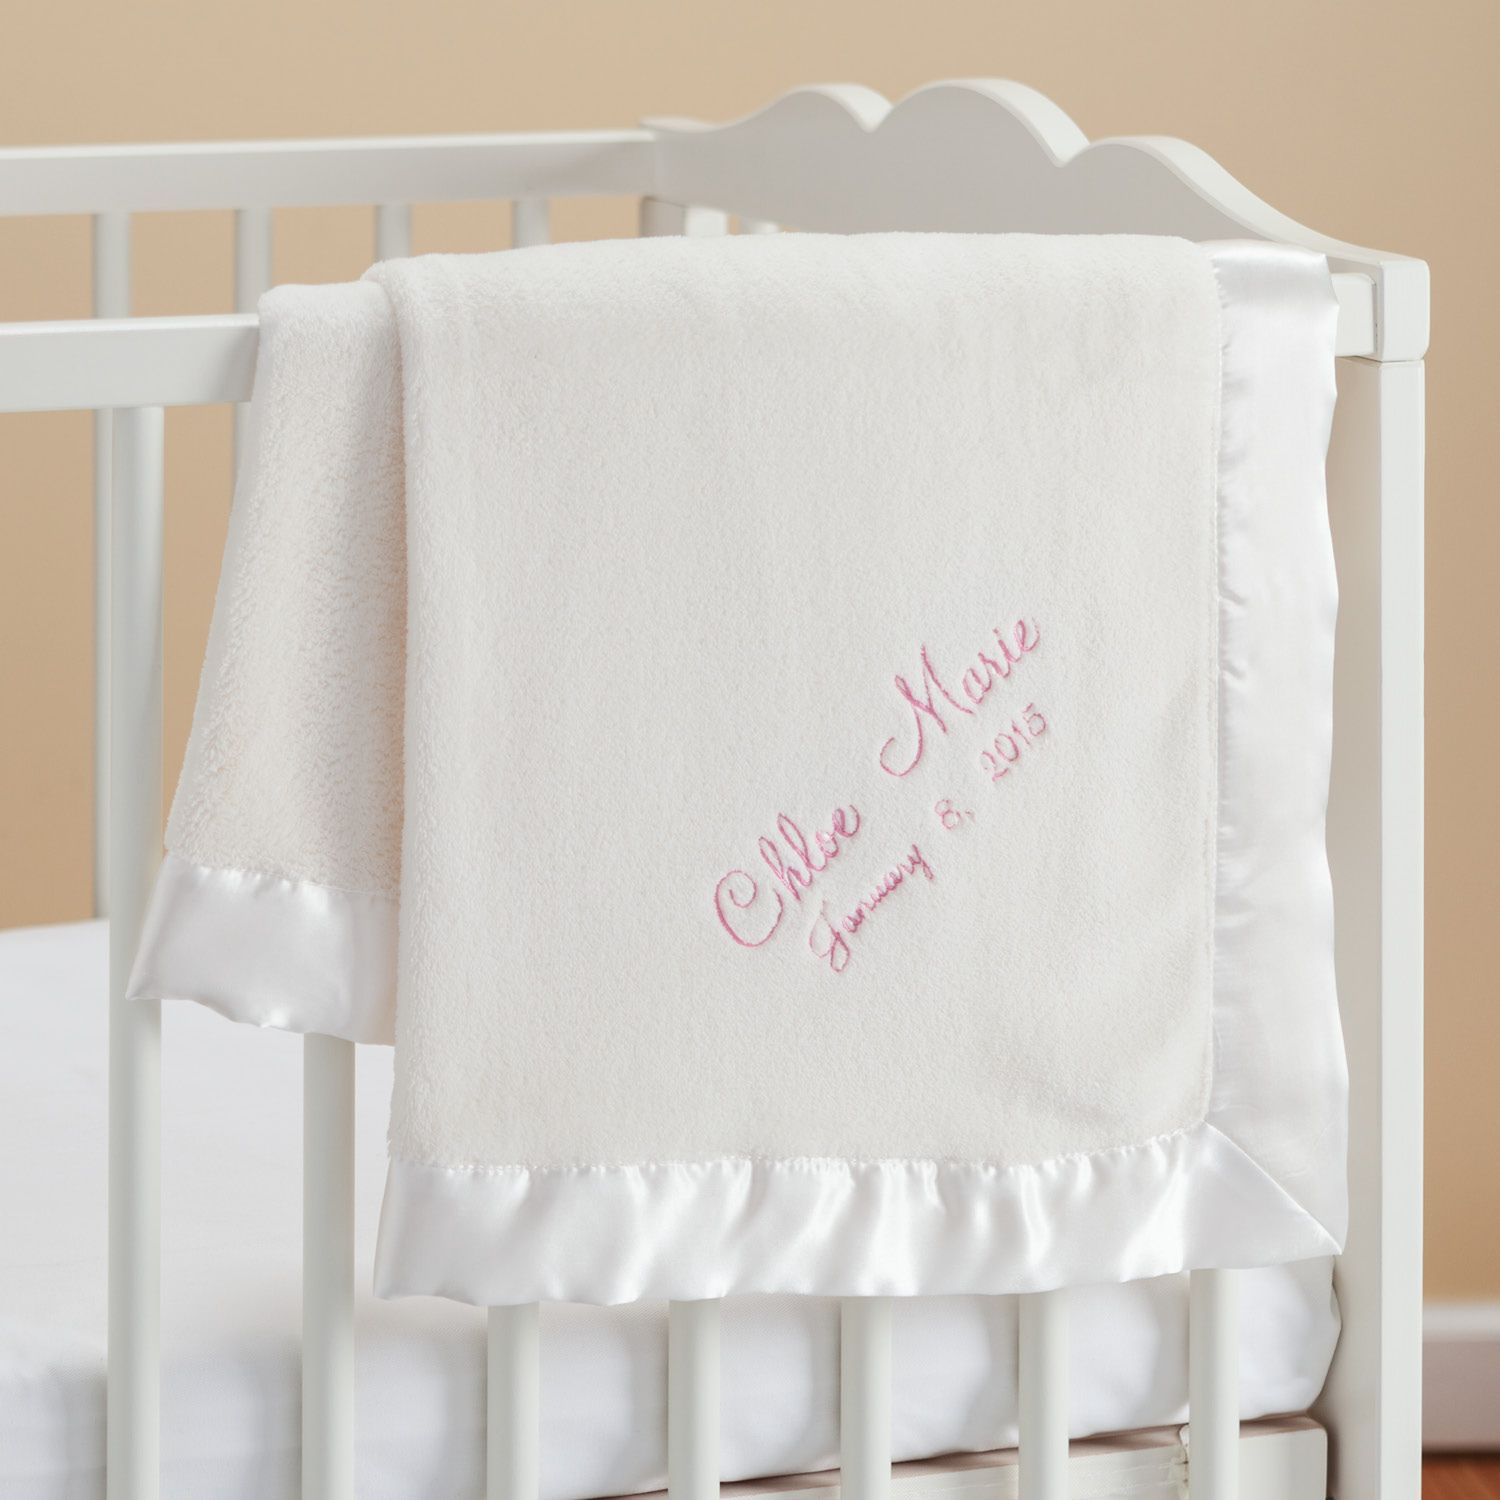 New baby girl personalized cream baby blanket newborn baby new baby girl personalized cream baby blanket newborn baby personalized planet negle Gallery